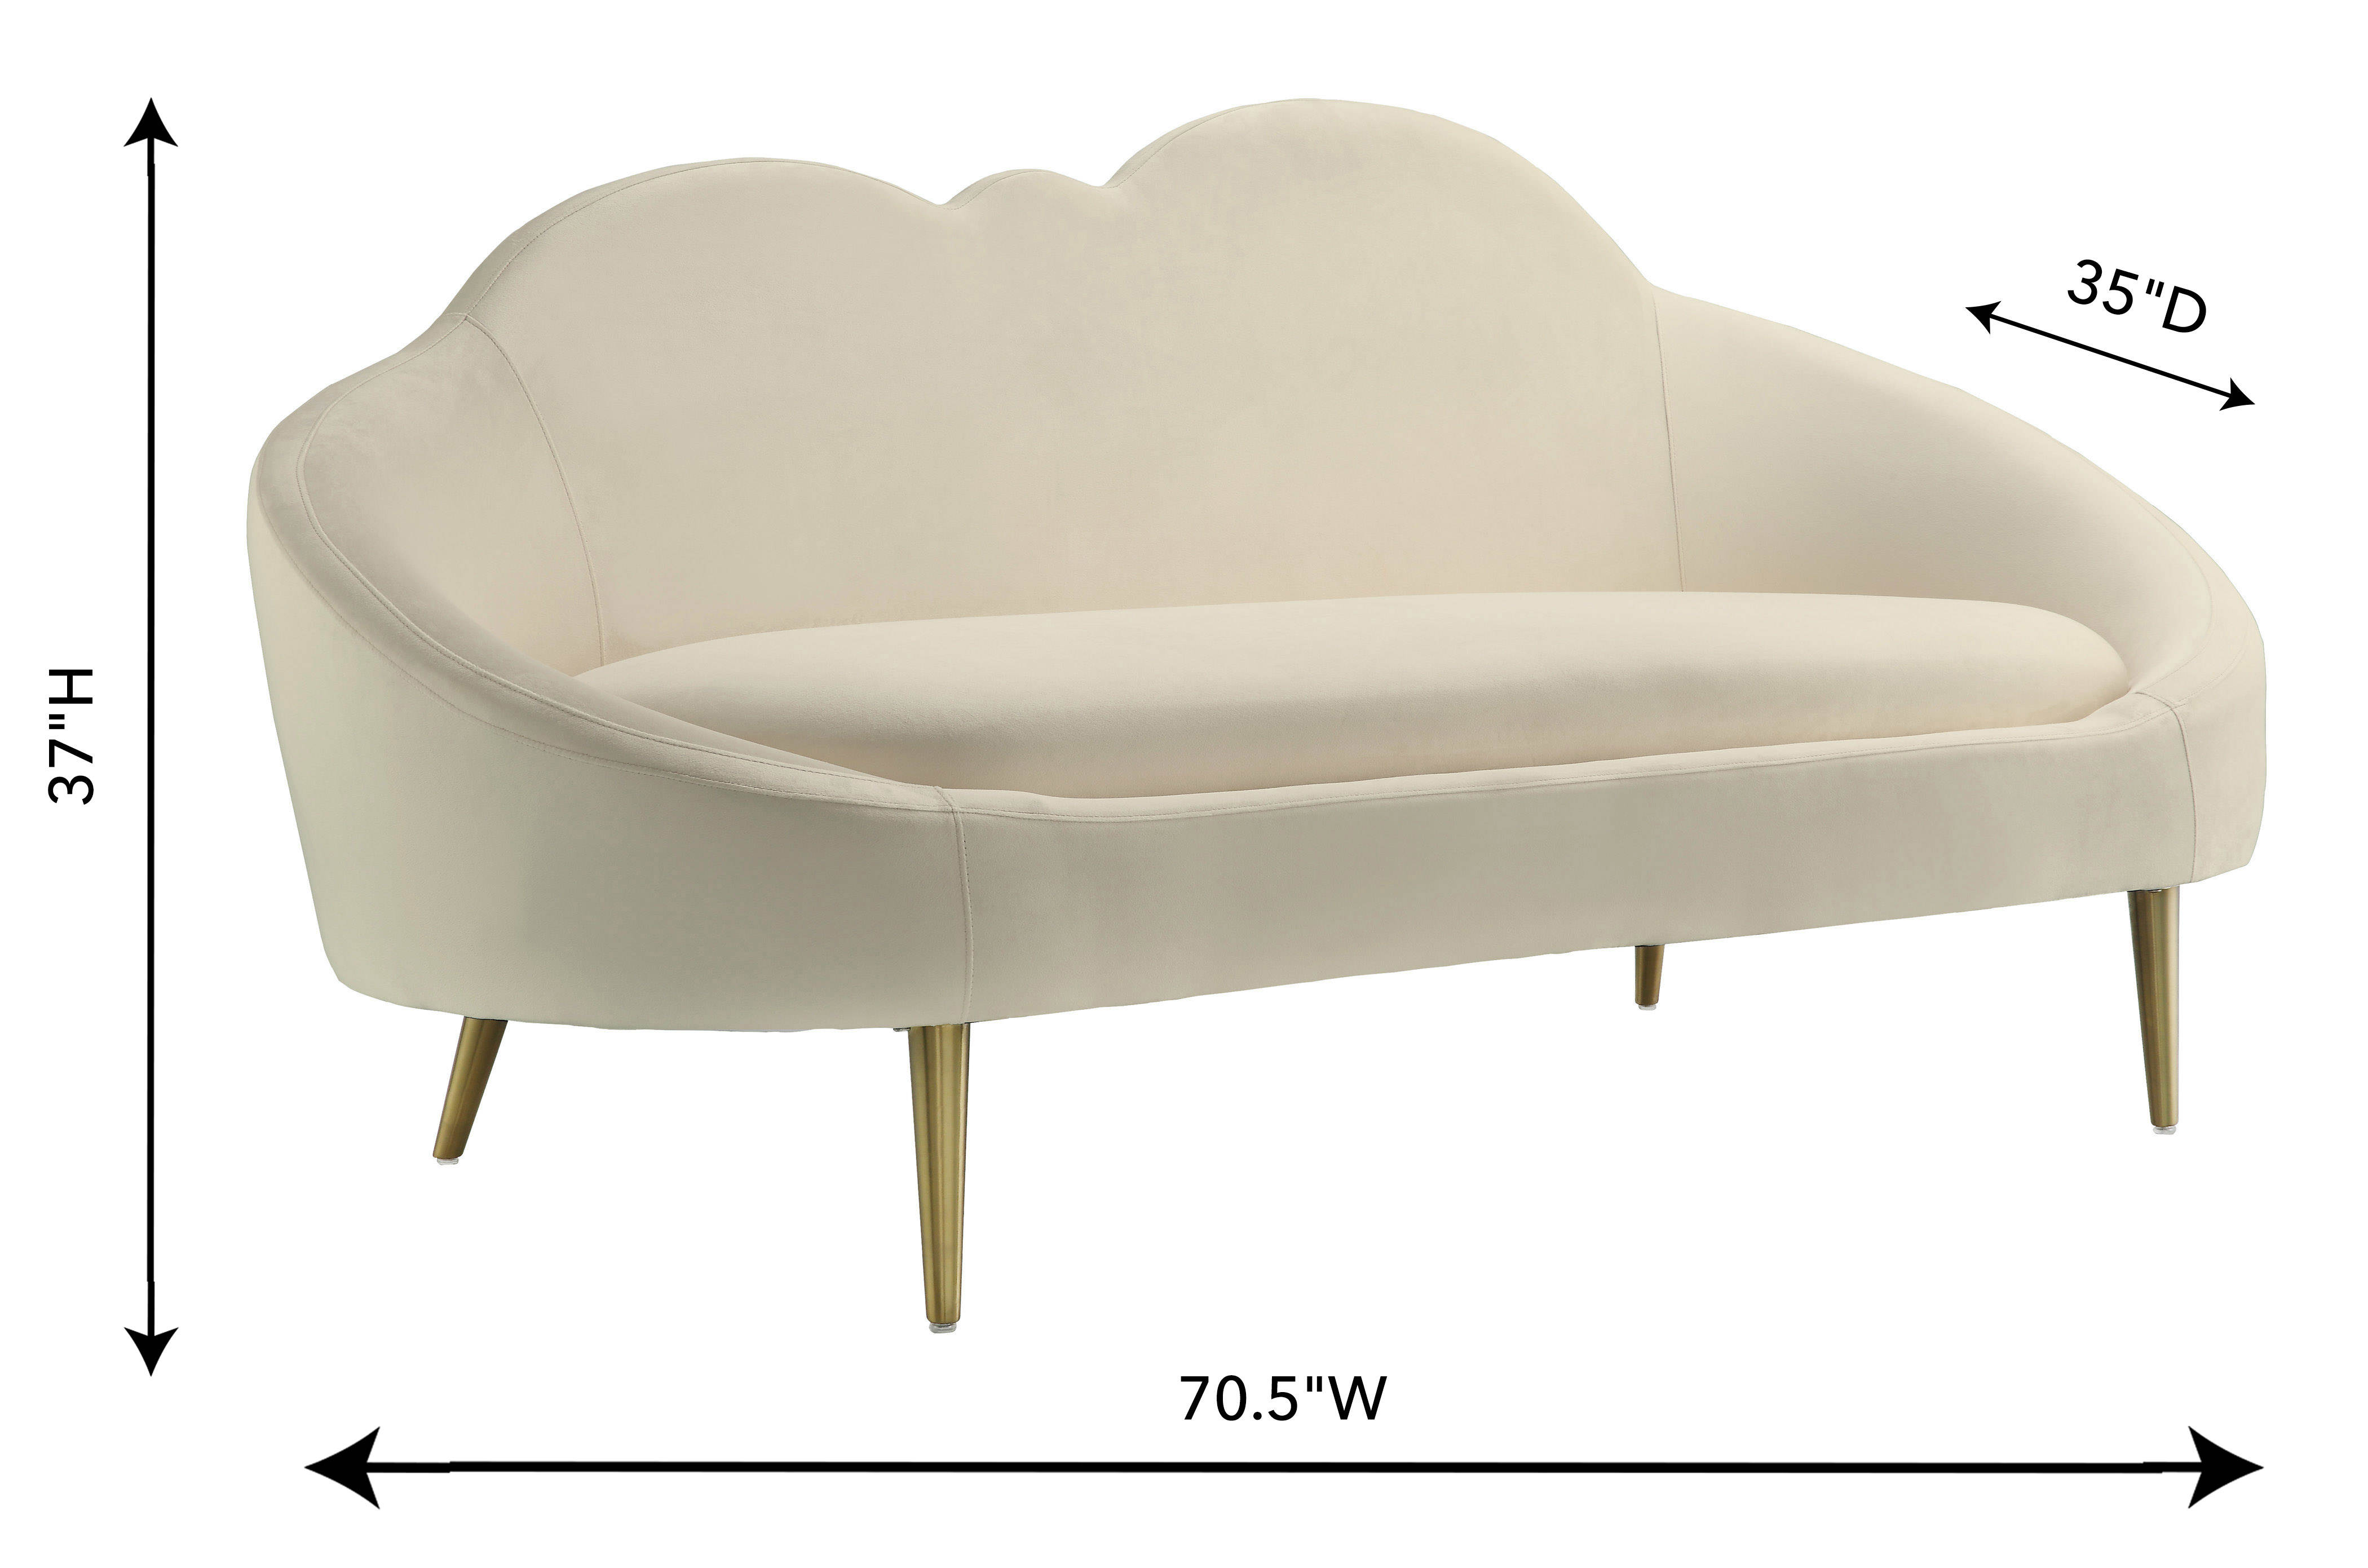 Prime Tov Furniture Cloud Cream Gold Velvet Settee Andrewgaddart Wooden Chair Designs For Living Room Andrewgaddartcom